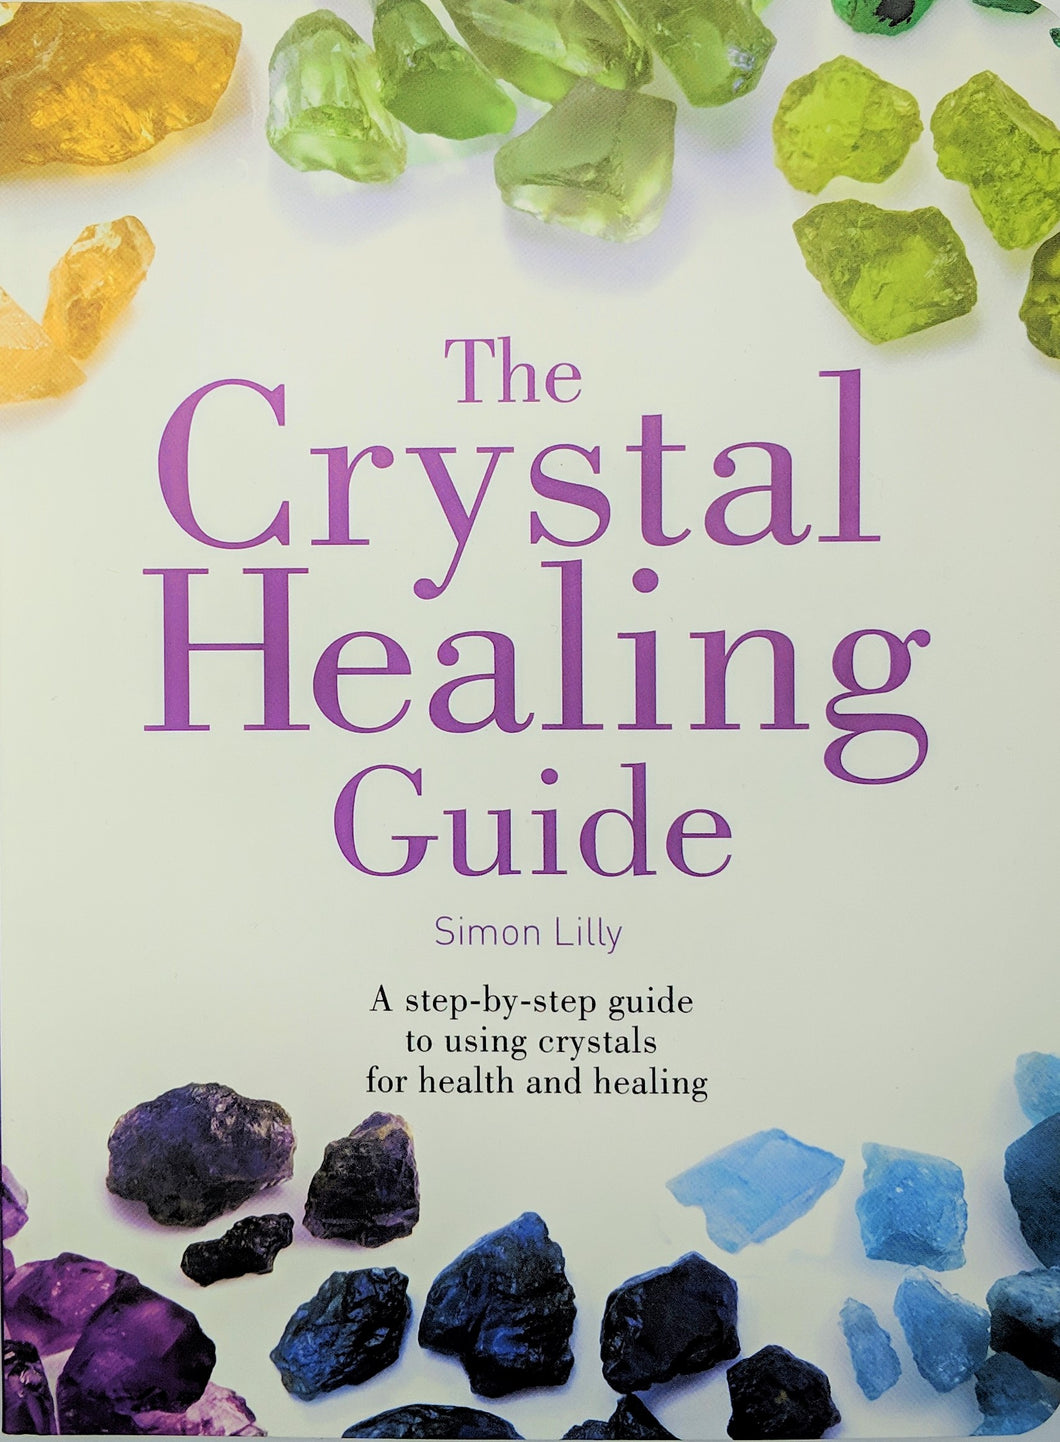 The Crystal Healing Guide by Simon Lilly